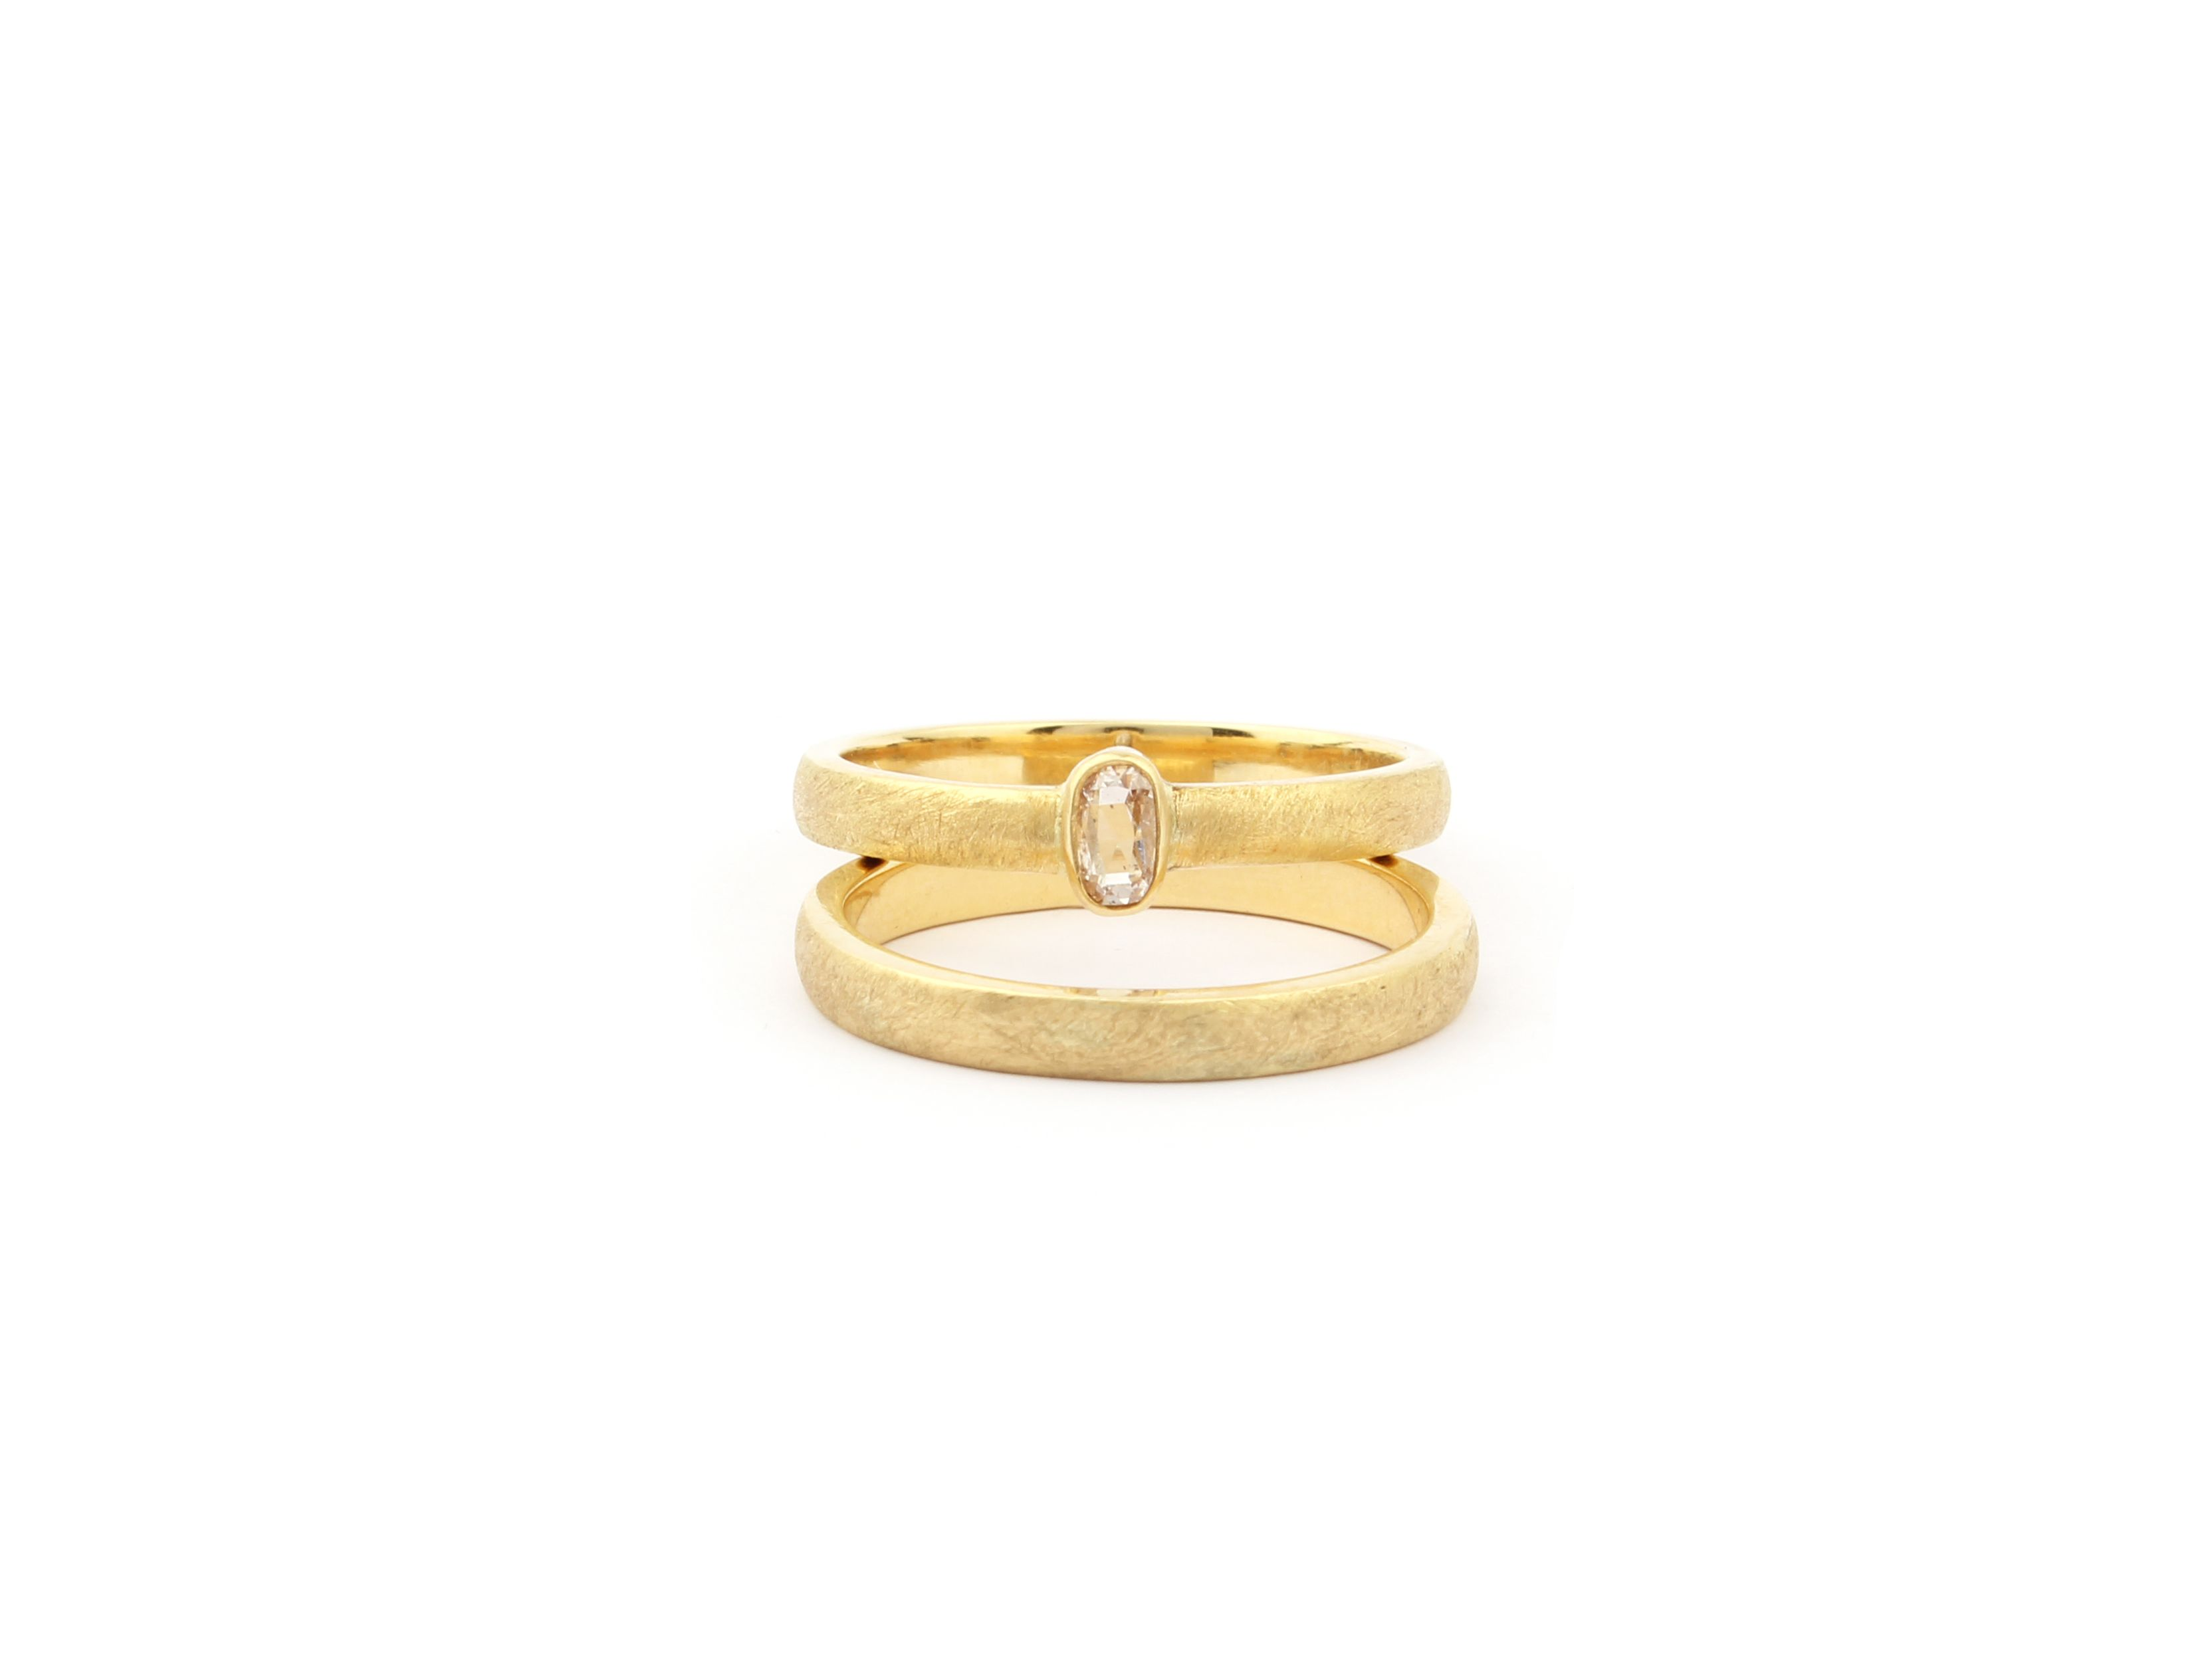 Wedding Rings 18 Carat Fair Trade Gold With Vintage Diamond By Atelier Luz